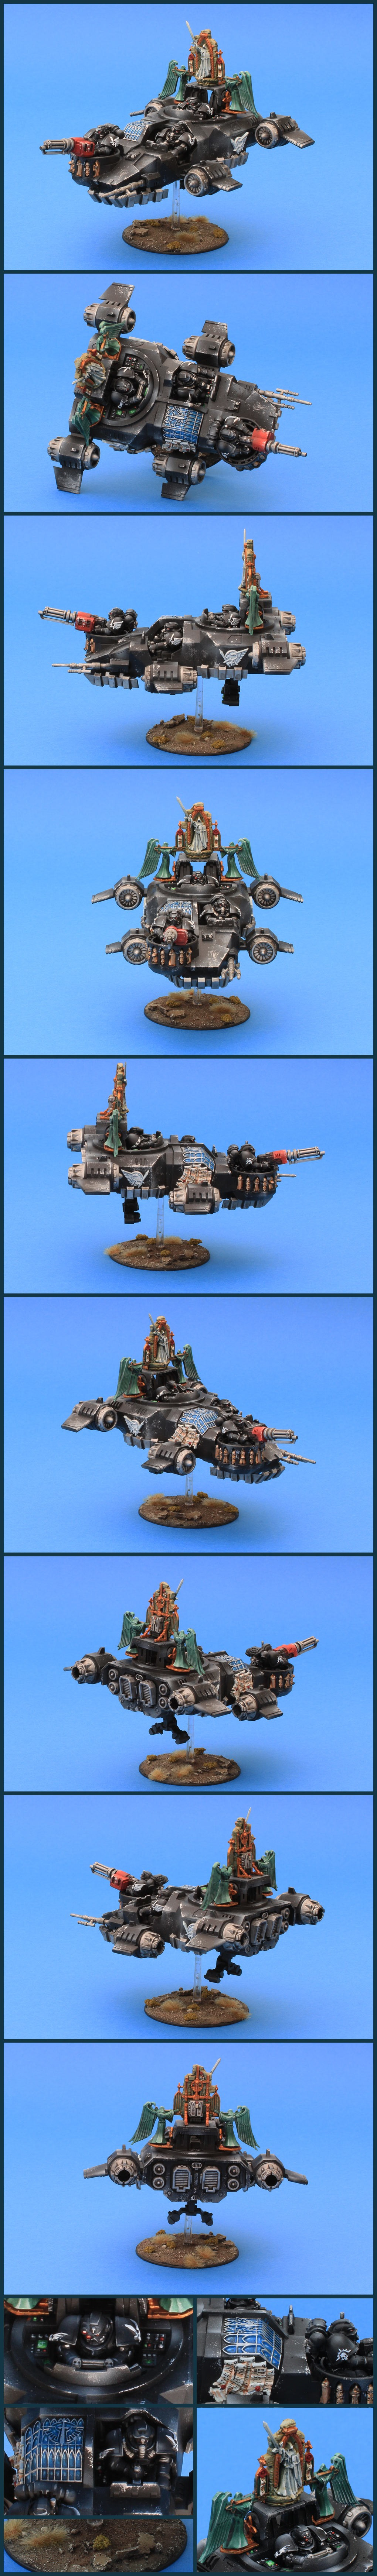 Dark Angels Ravenwing Land Speeder Darkshroud